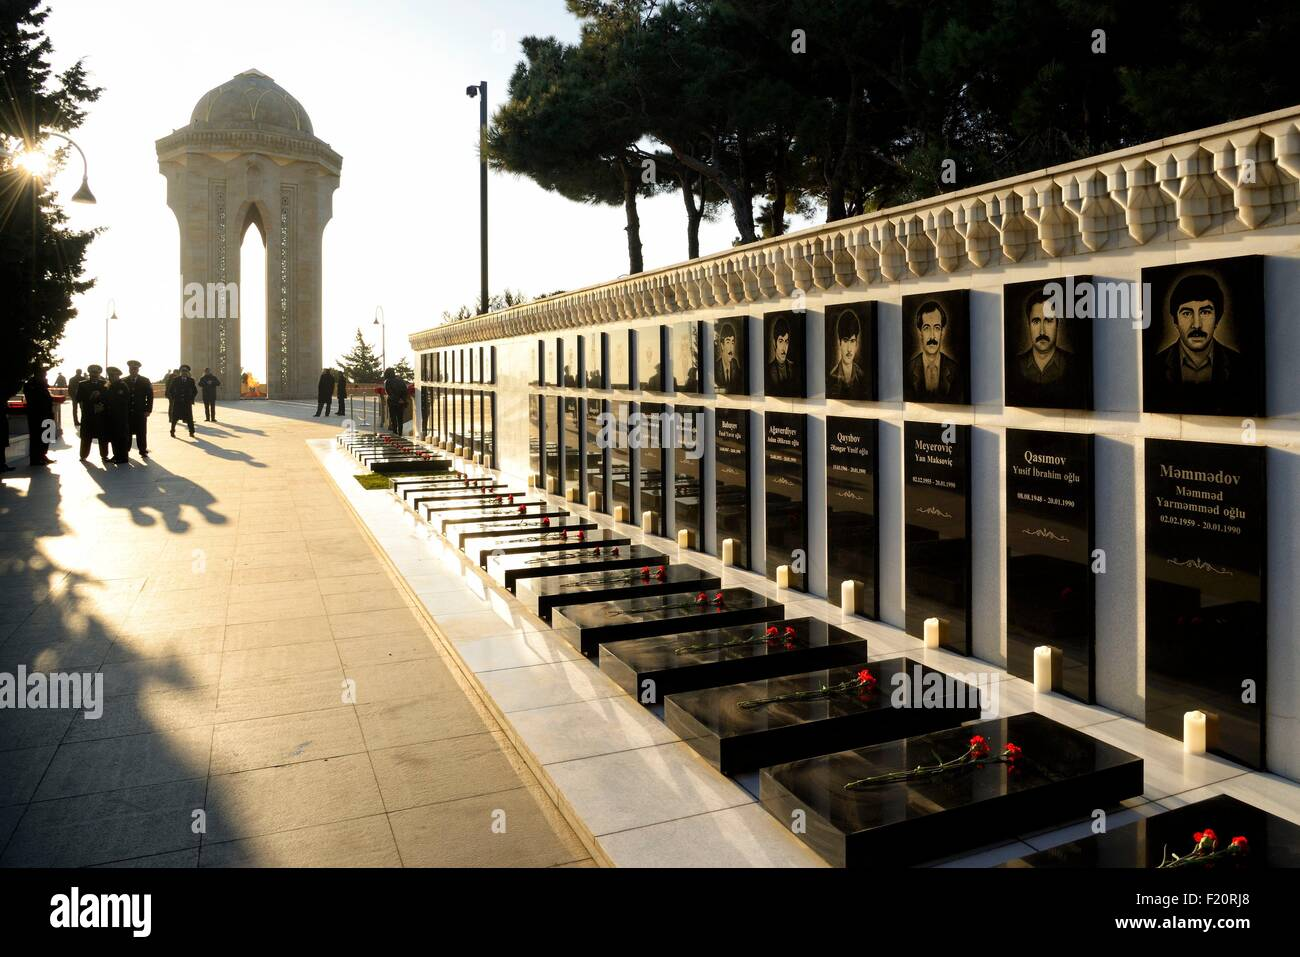 Azerbaijan, Baku, Martyrs' Lane (Alley of Martyrs), memorial and tombs of those killed by the soviet army during - Stock Image